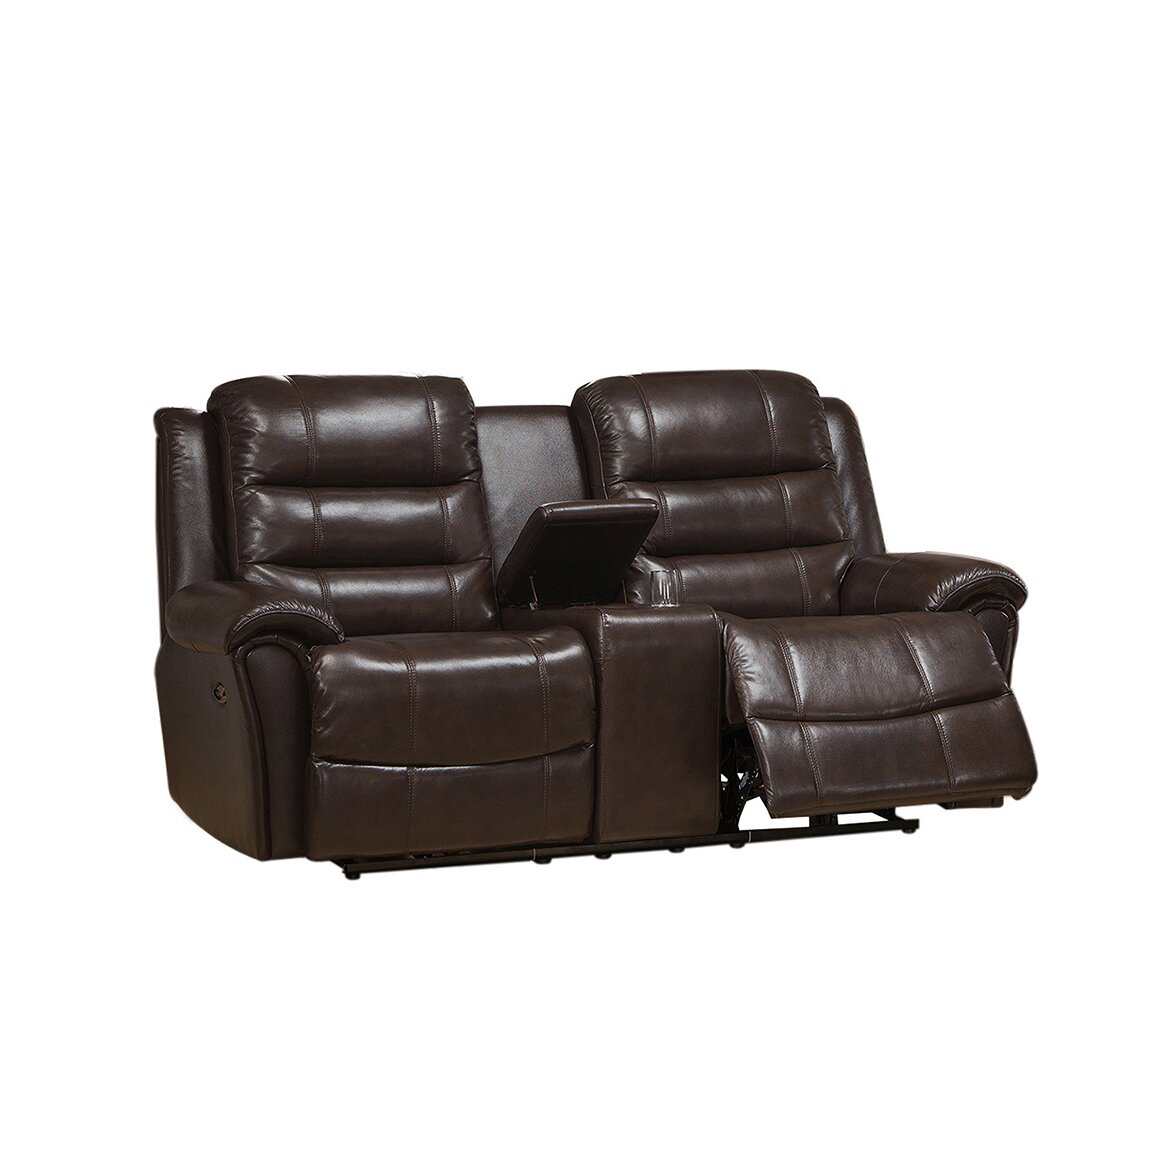 Leather Reclining Sofa And Loveseat Set Abbyson Living